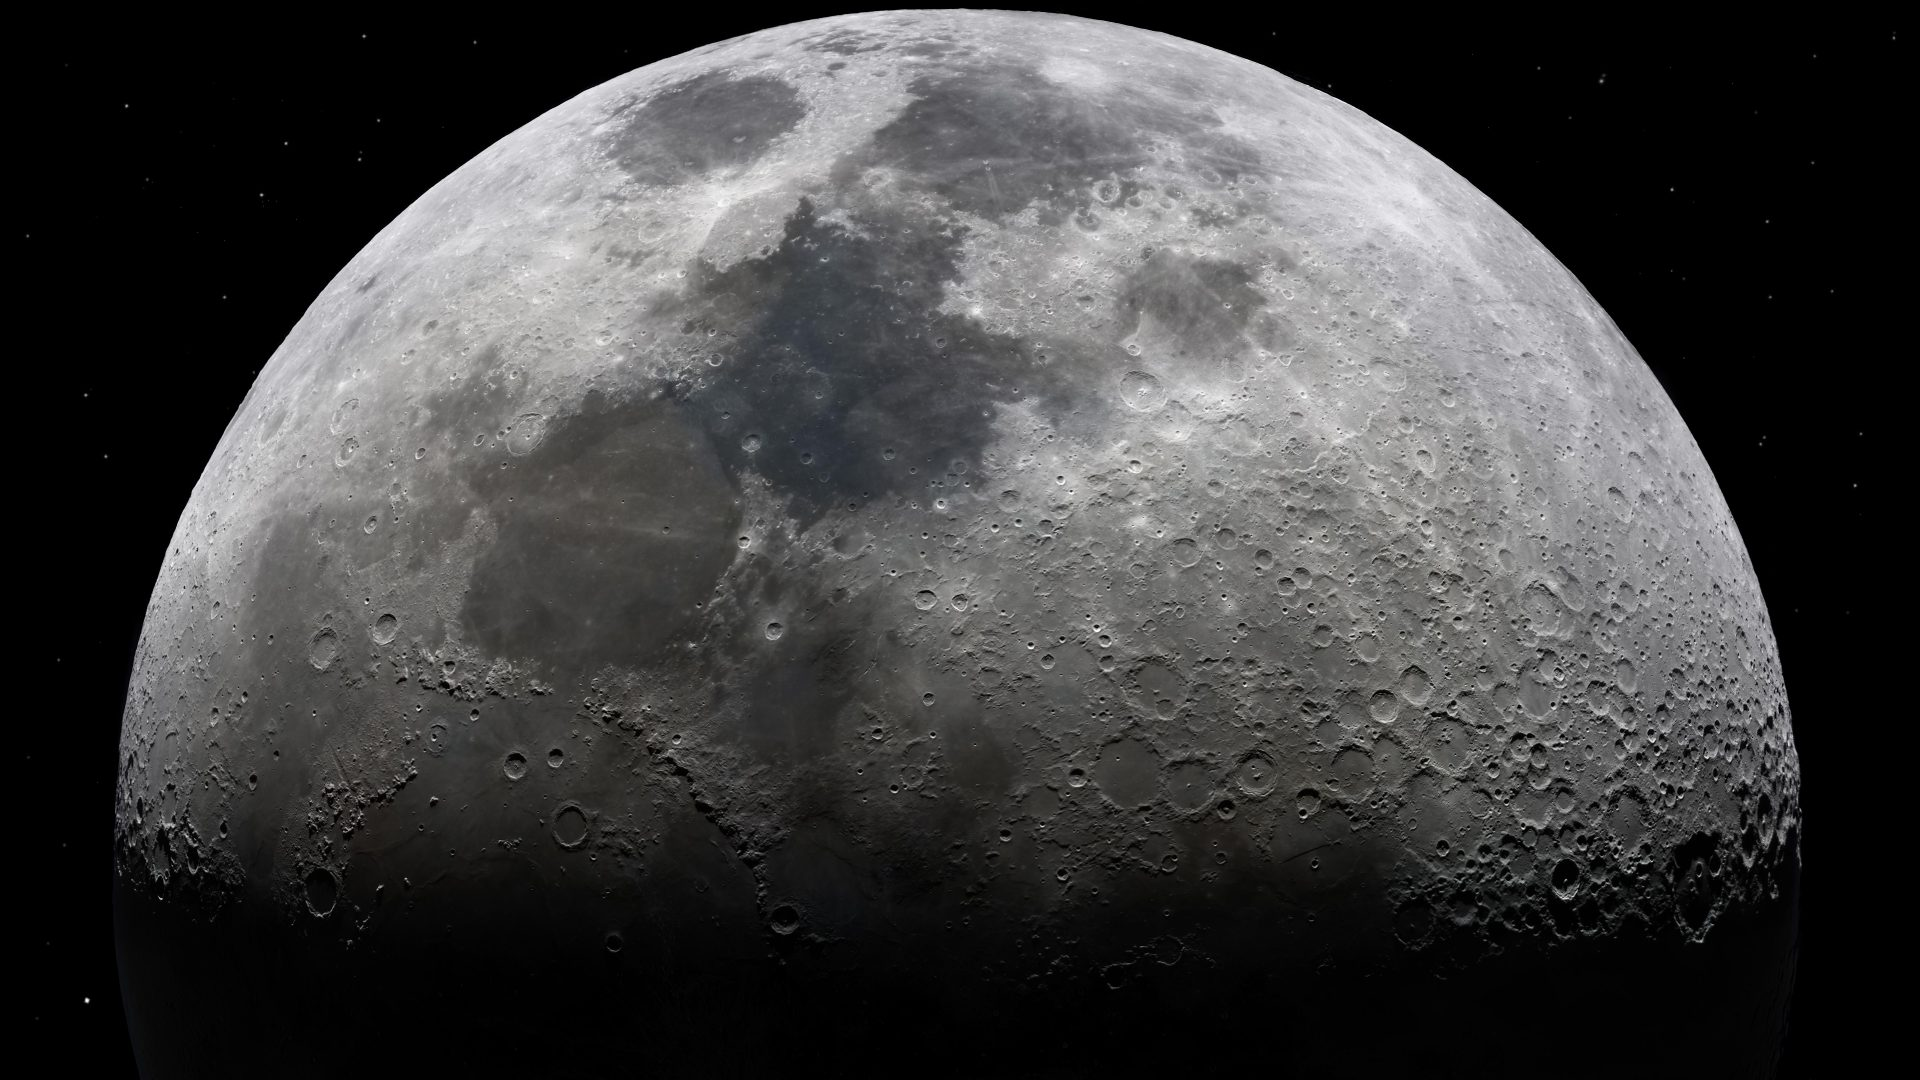 An amateur shot of the moon in 8k. Amazing detail